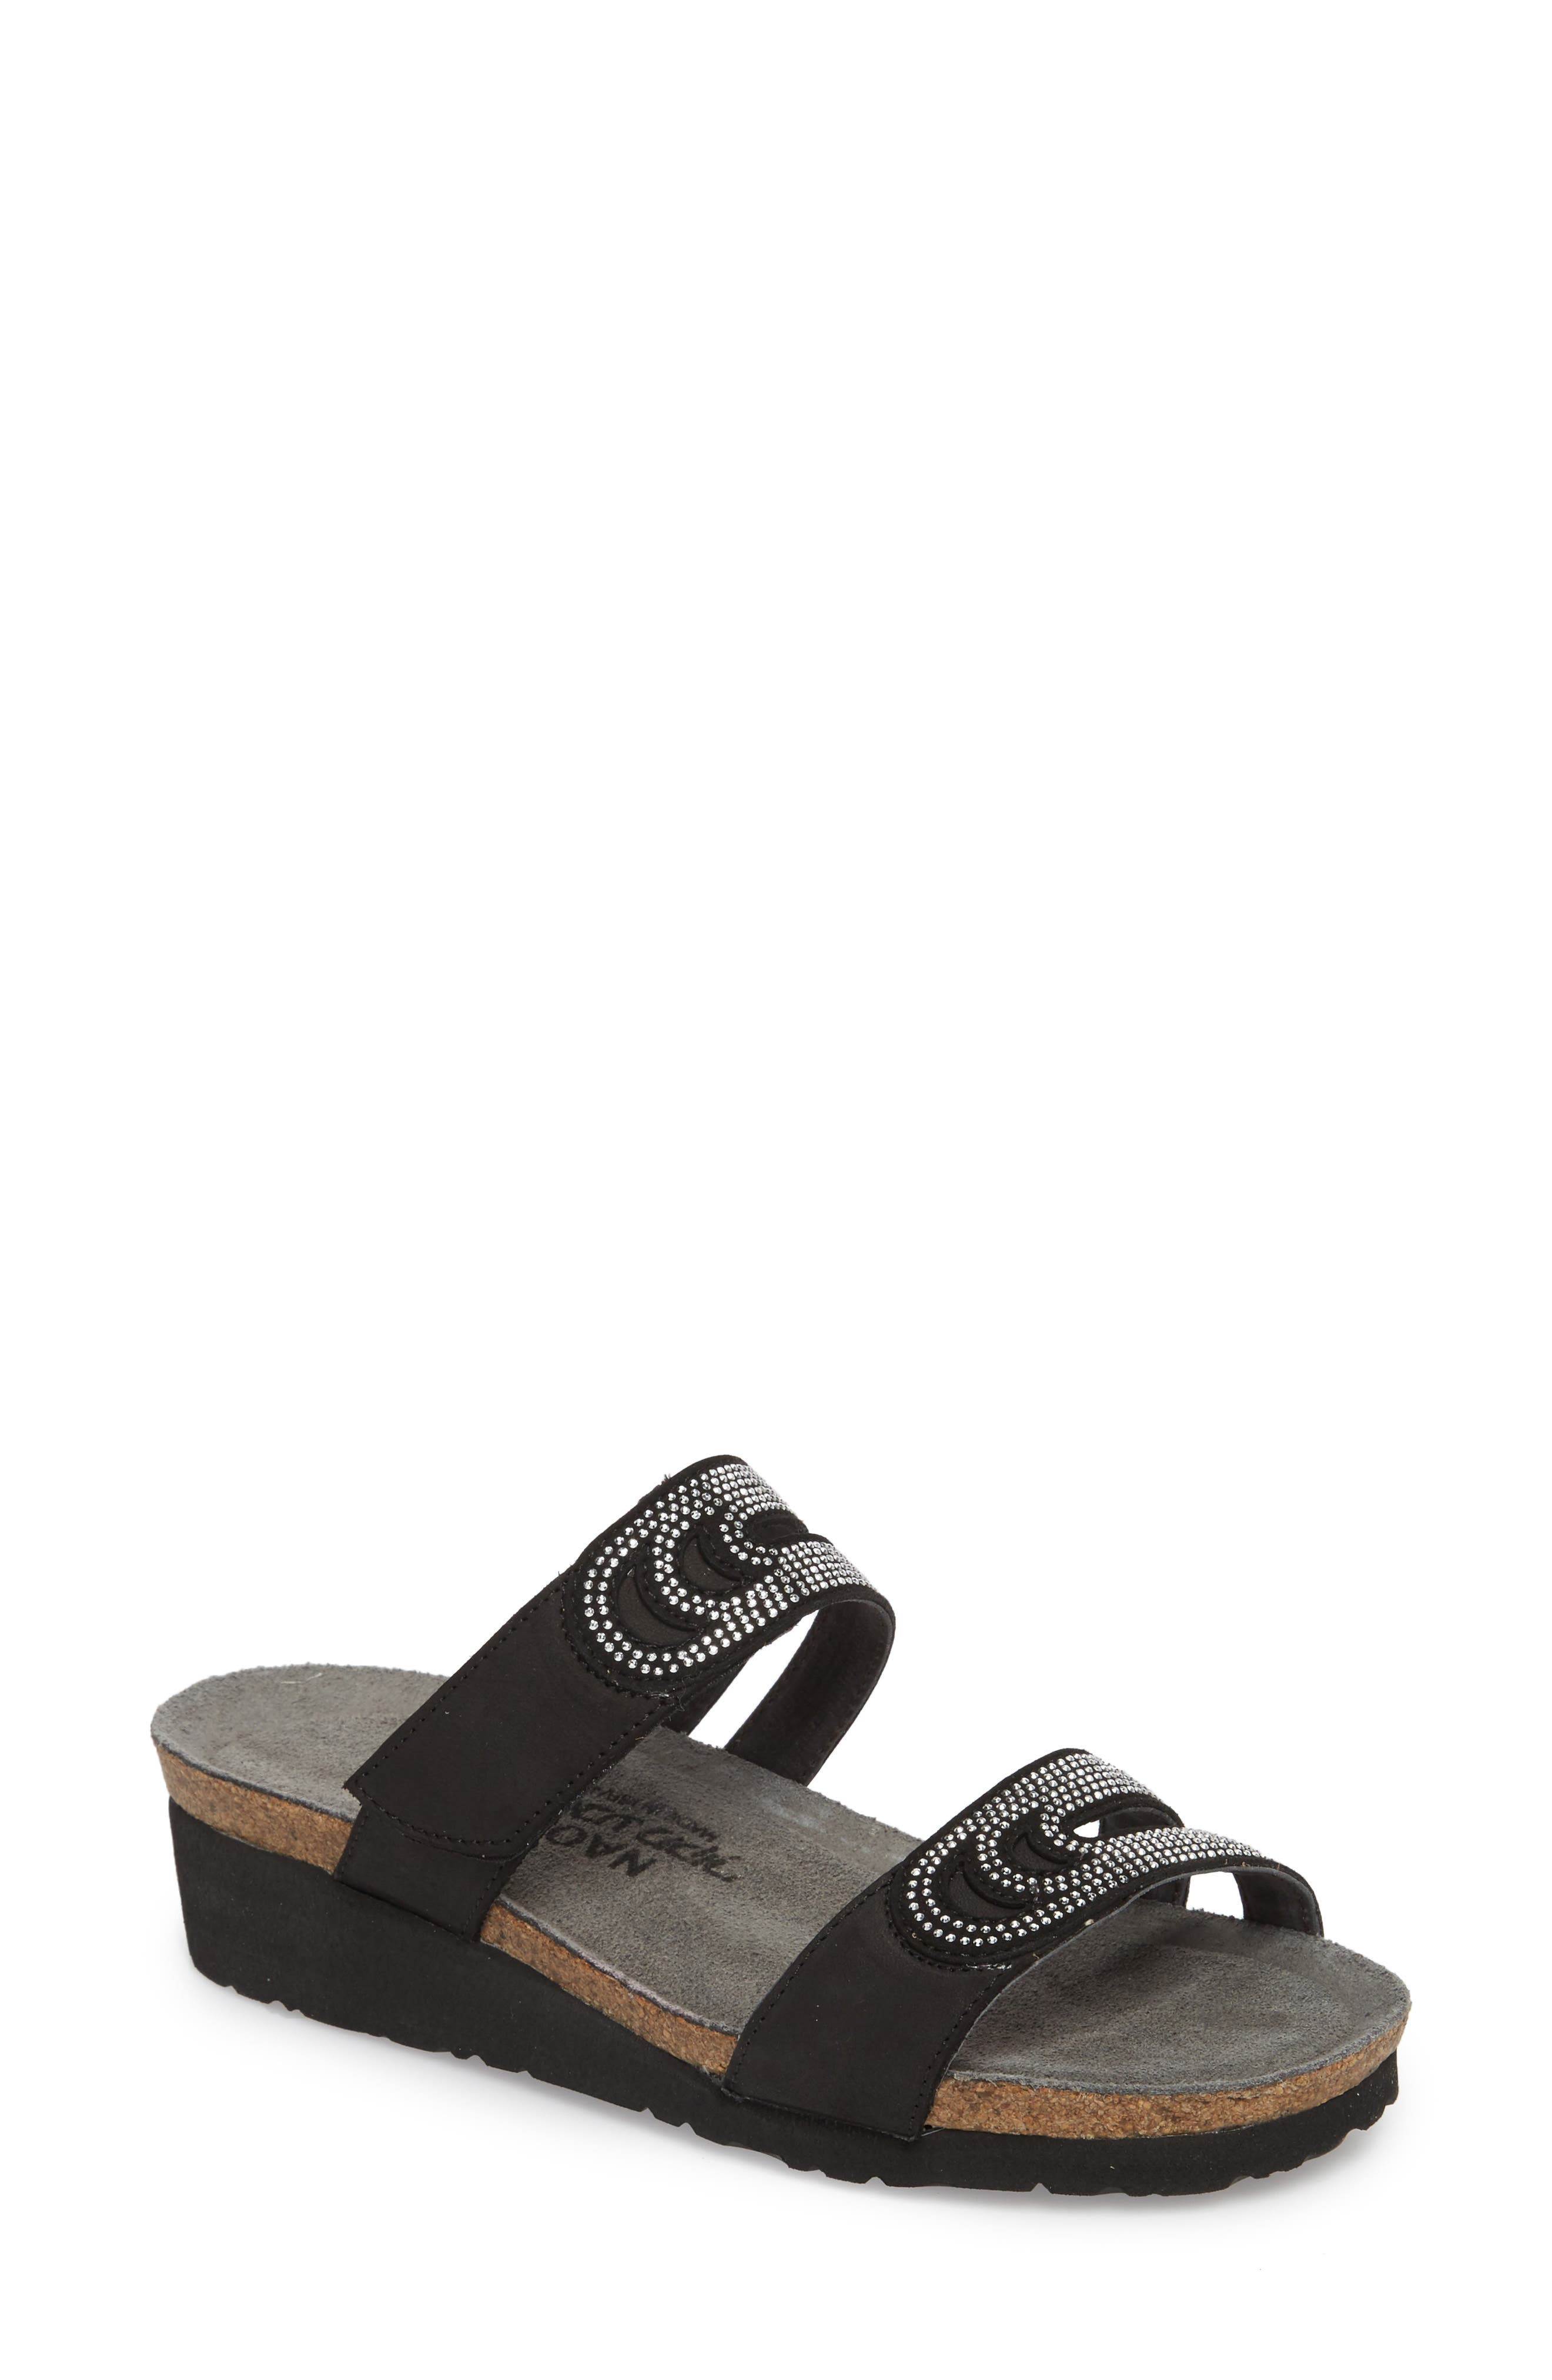 Ainsley Studded Slide Sandal,                         Main,                         color, BLACK NUBUCK